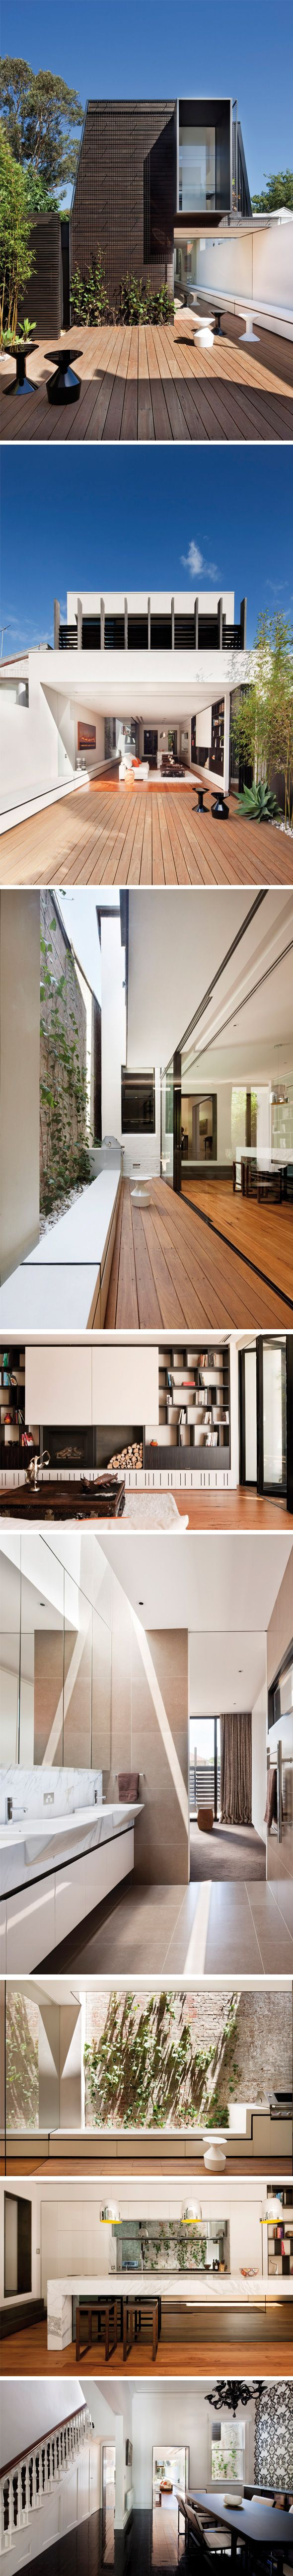 Modernes haus-exterieur-design  best images about facade on pinterest